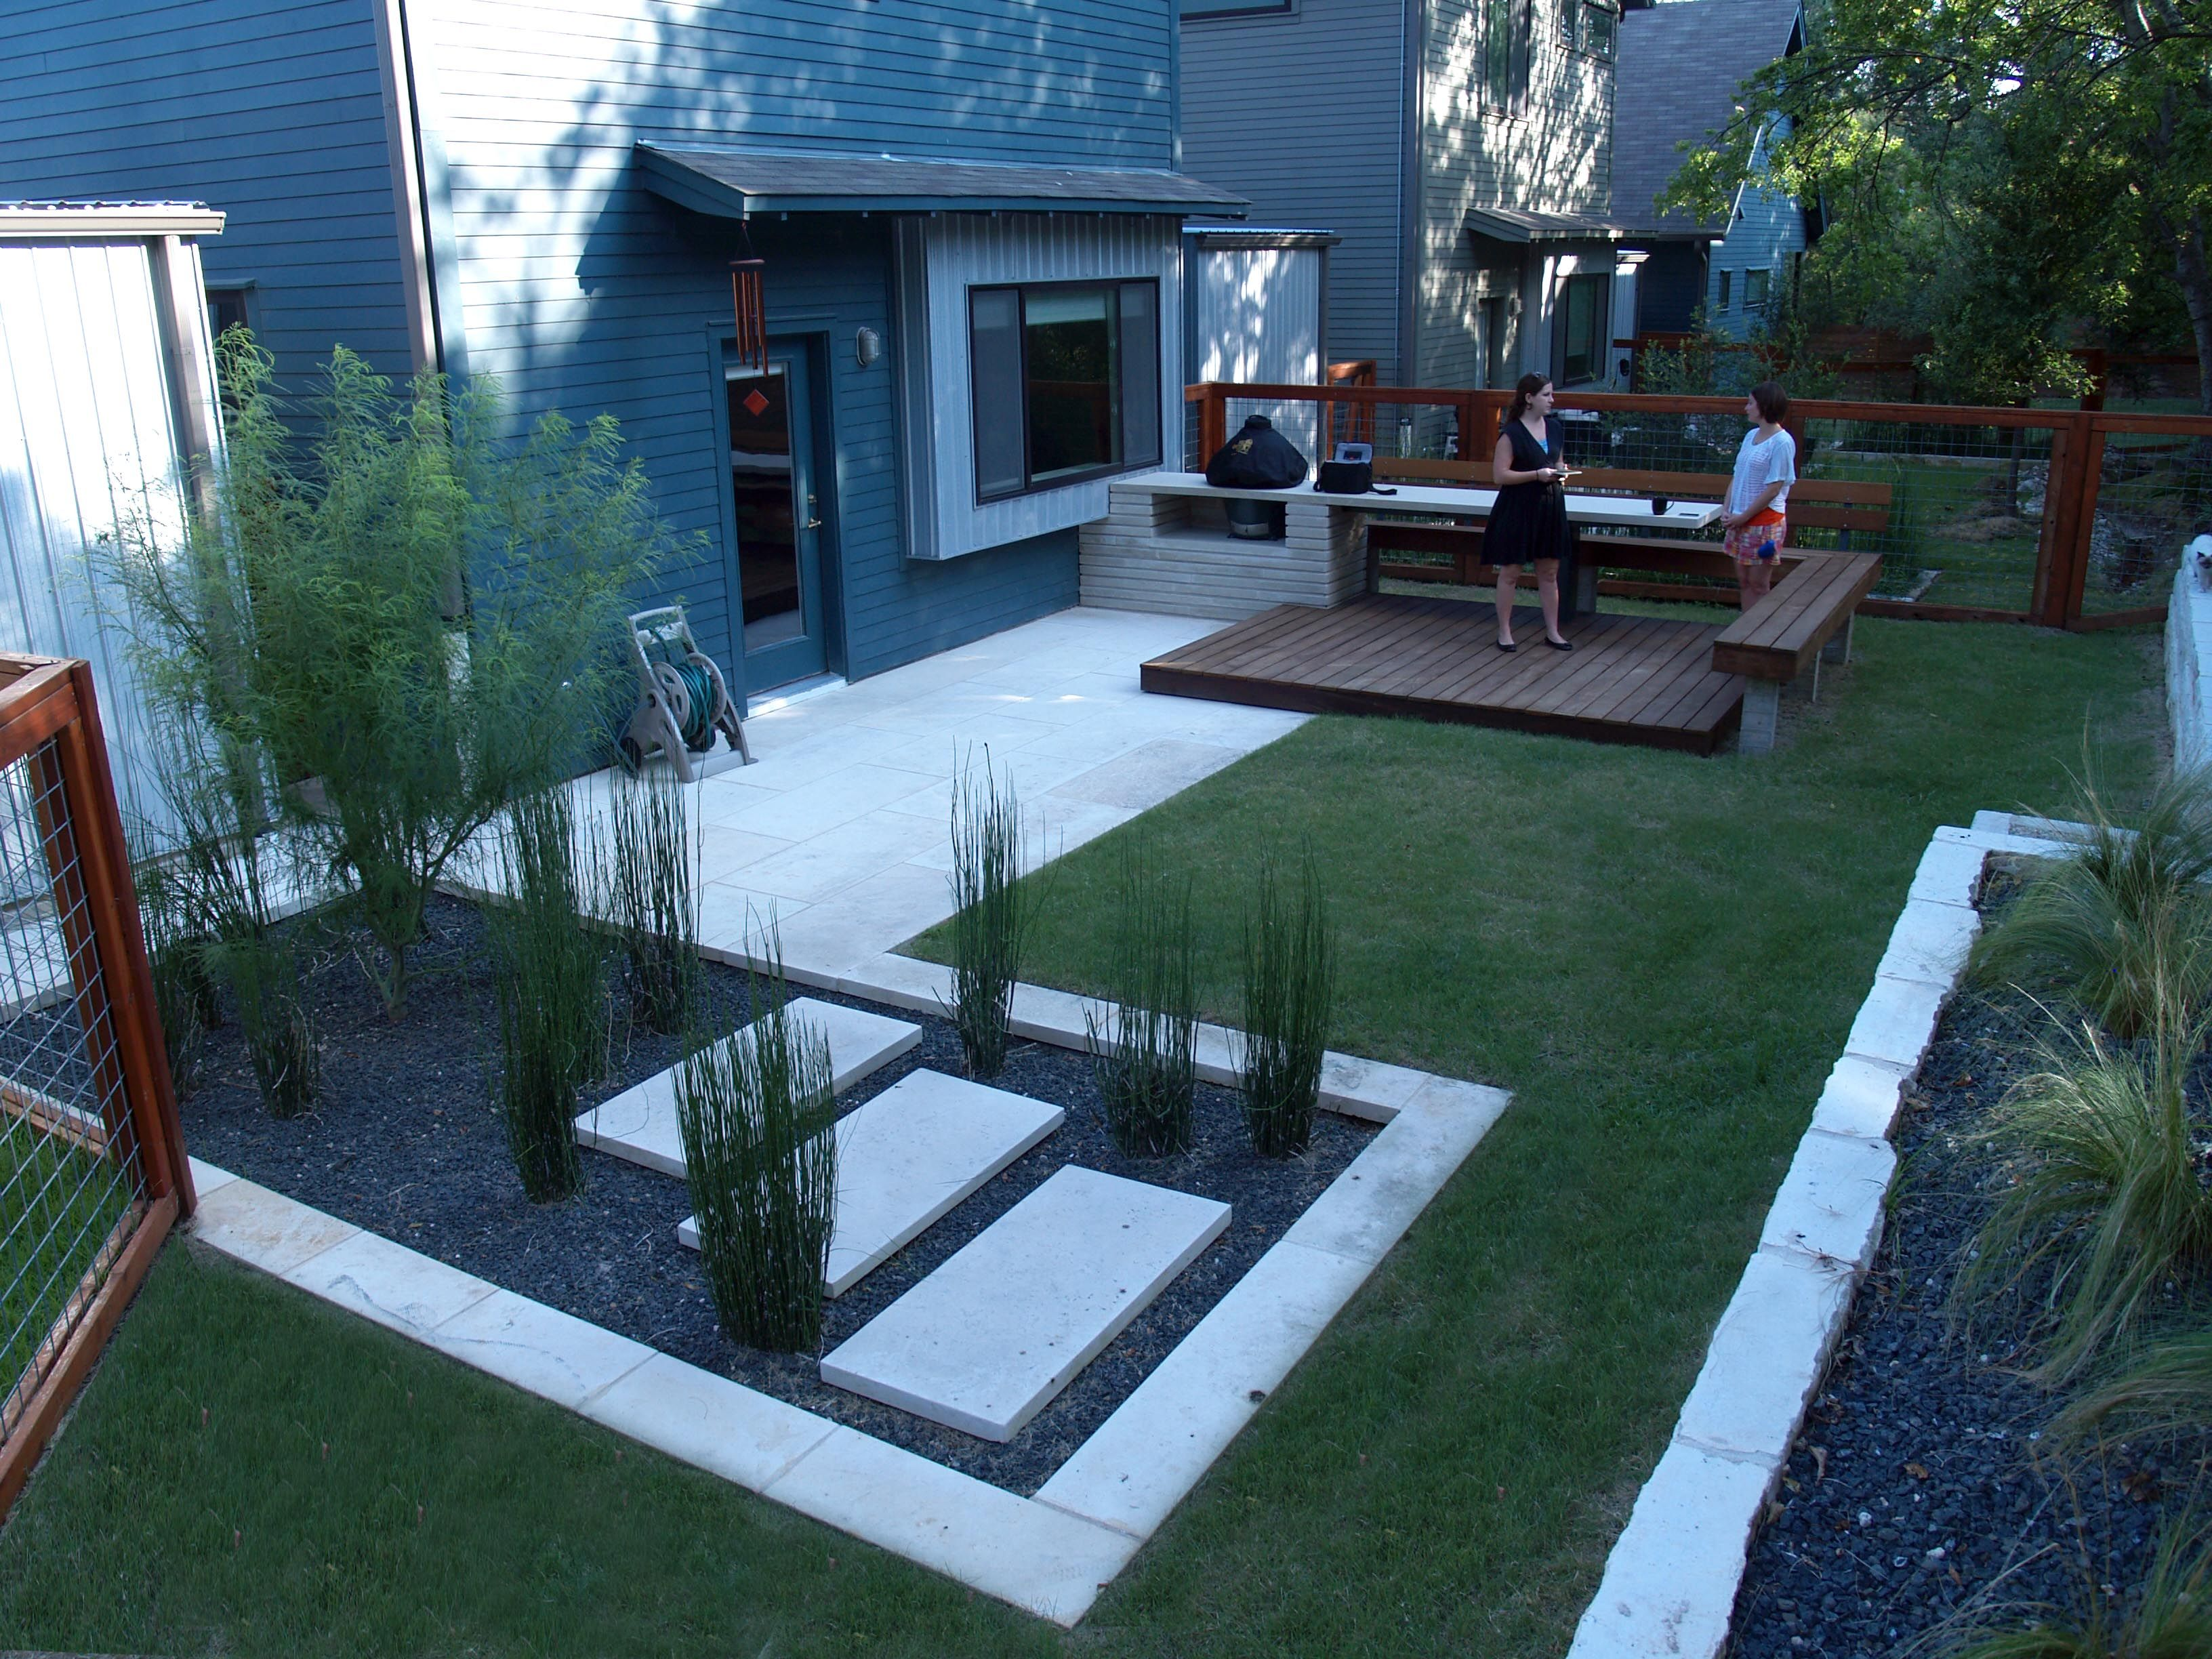 Modern+Small+Backyard+Landscaping+Ideas+with+Outdoor+Kitchen+Cabinet ...